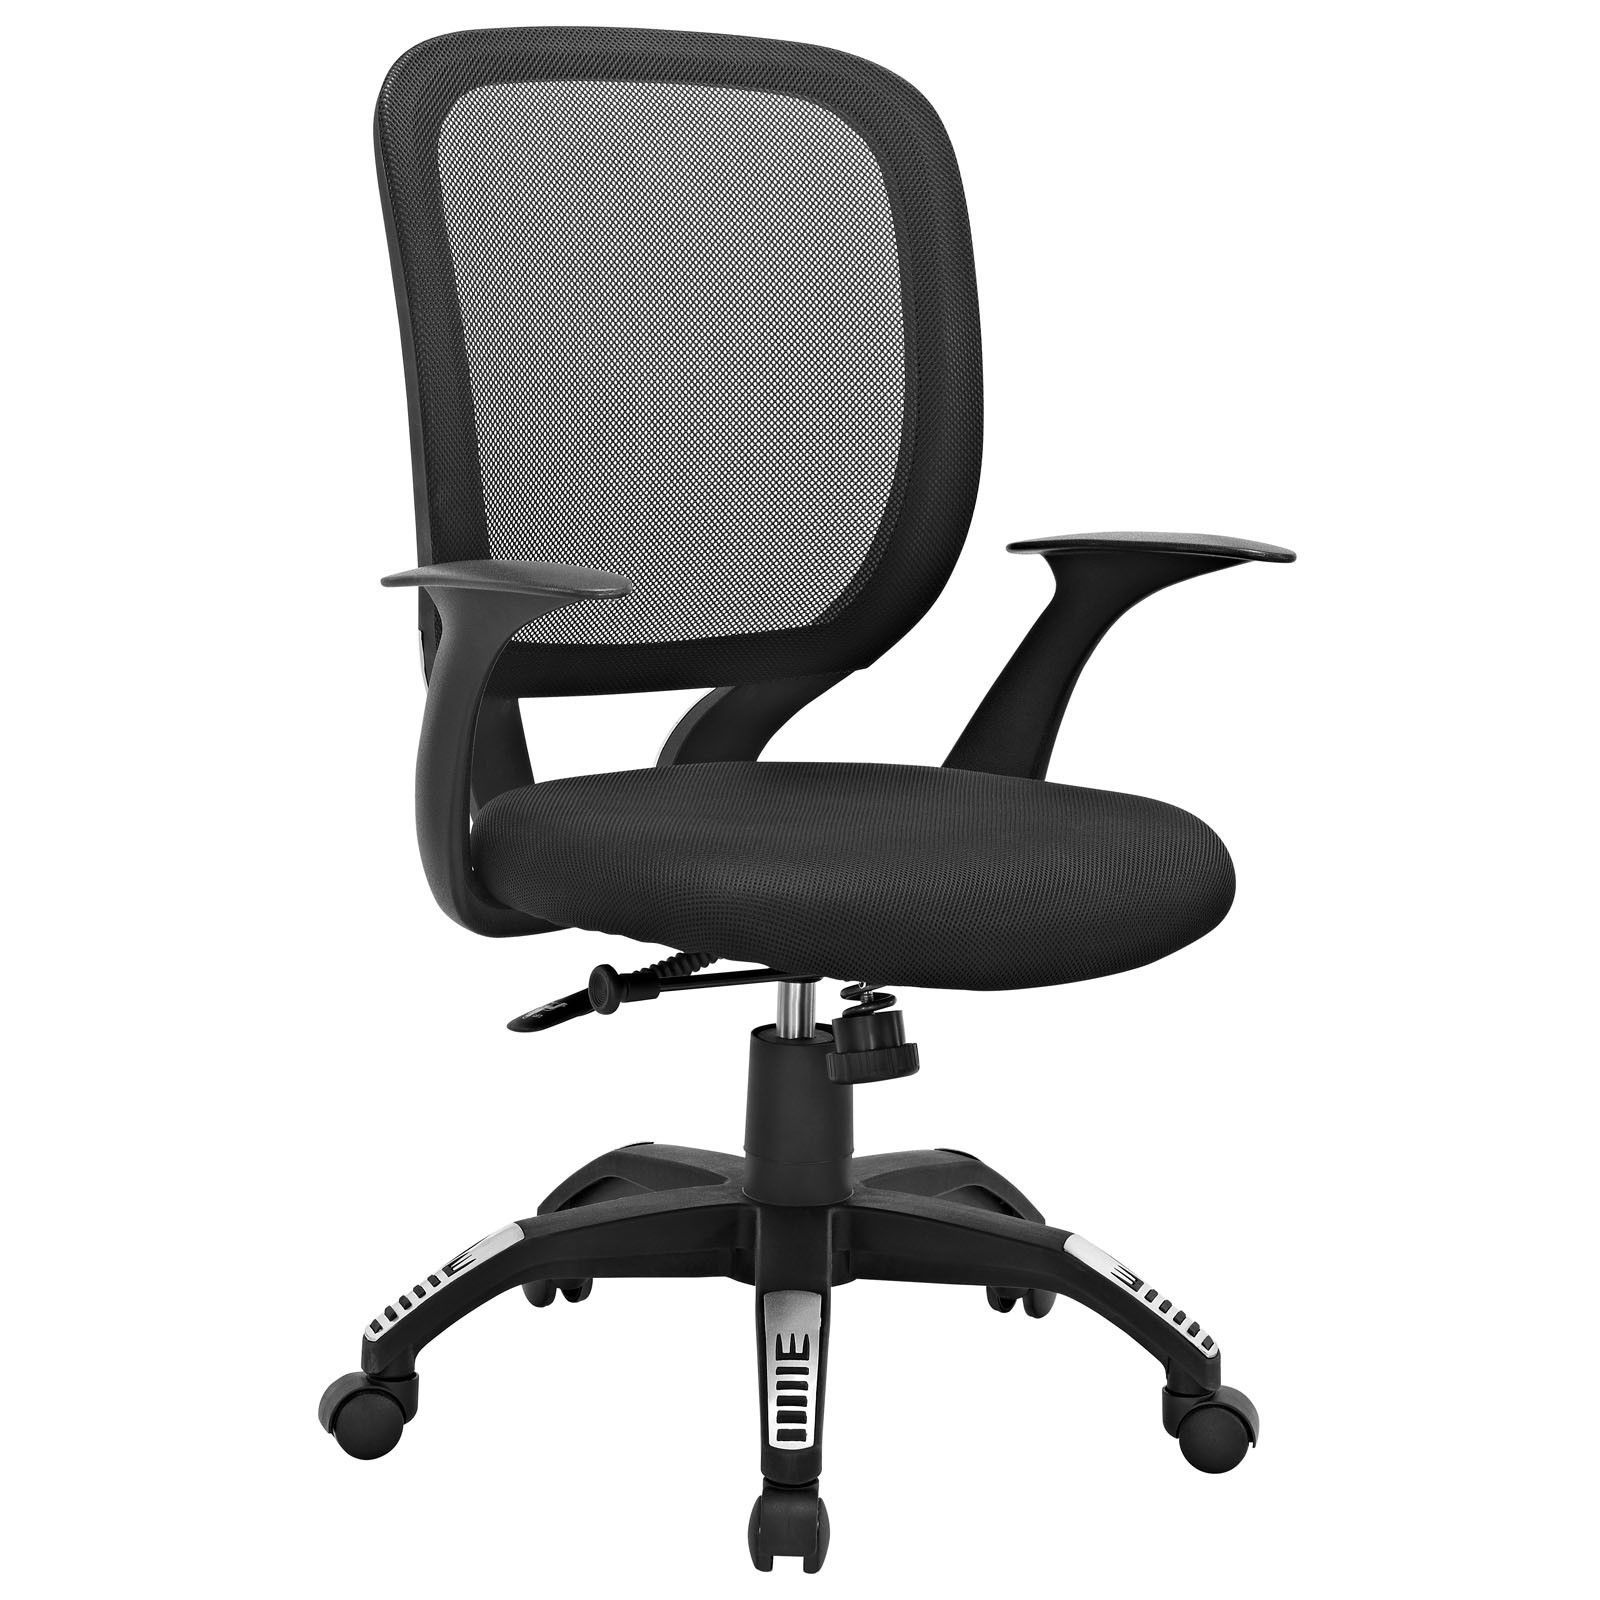 Scope office chair products